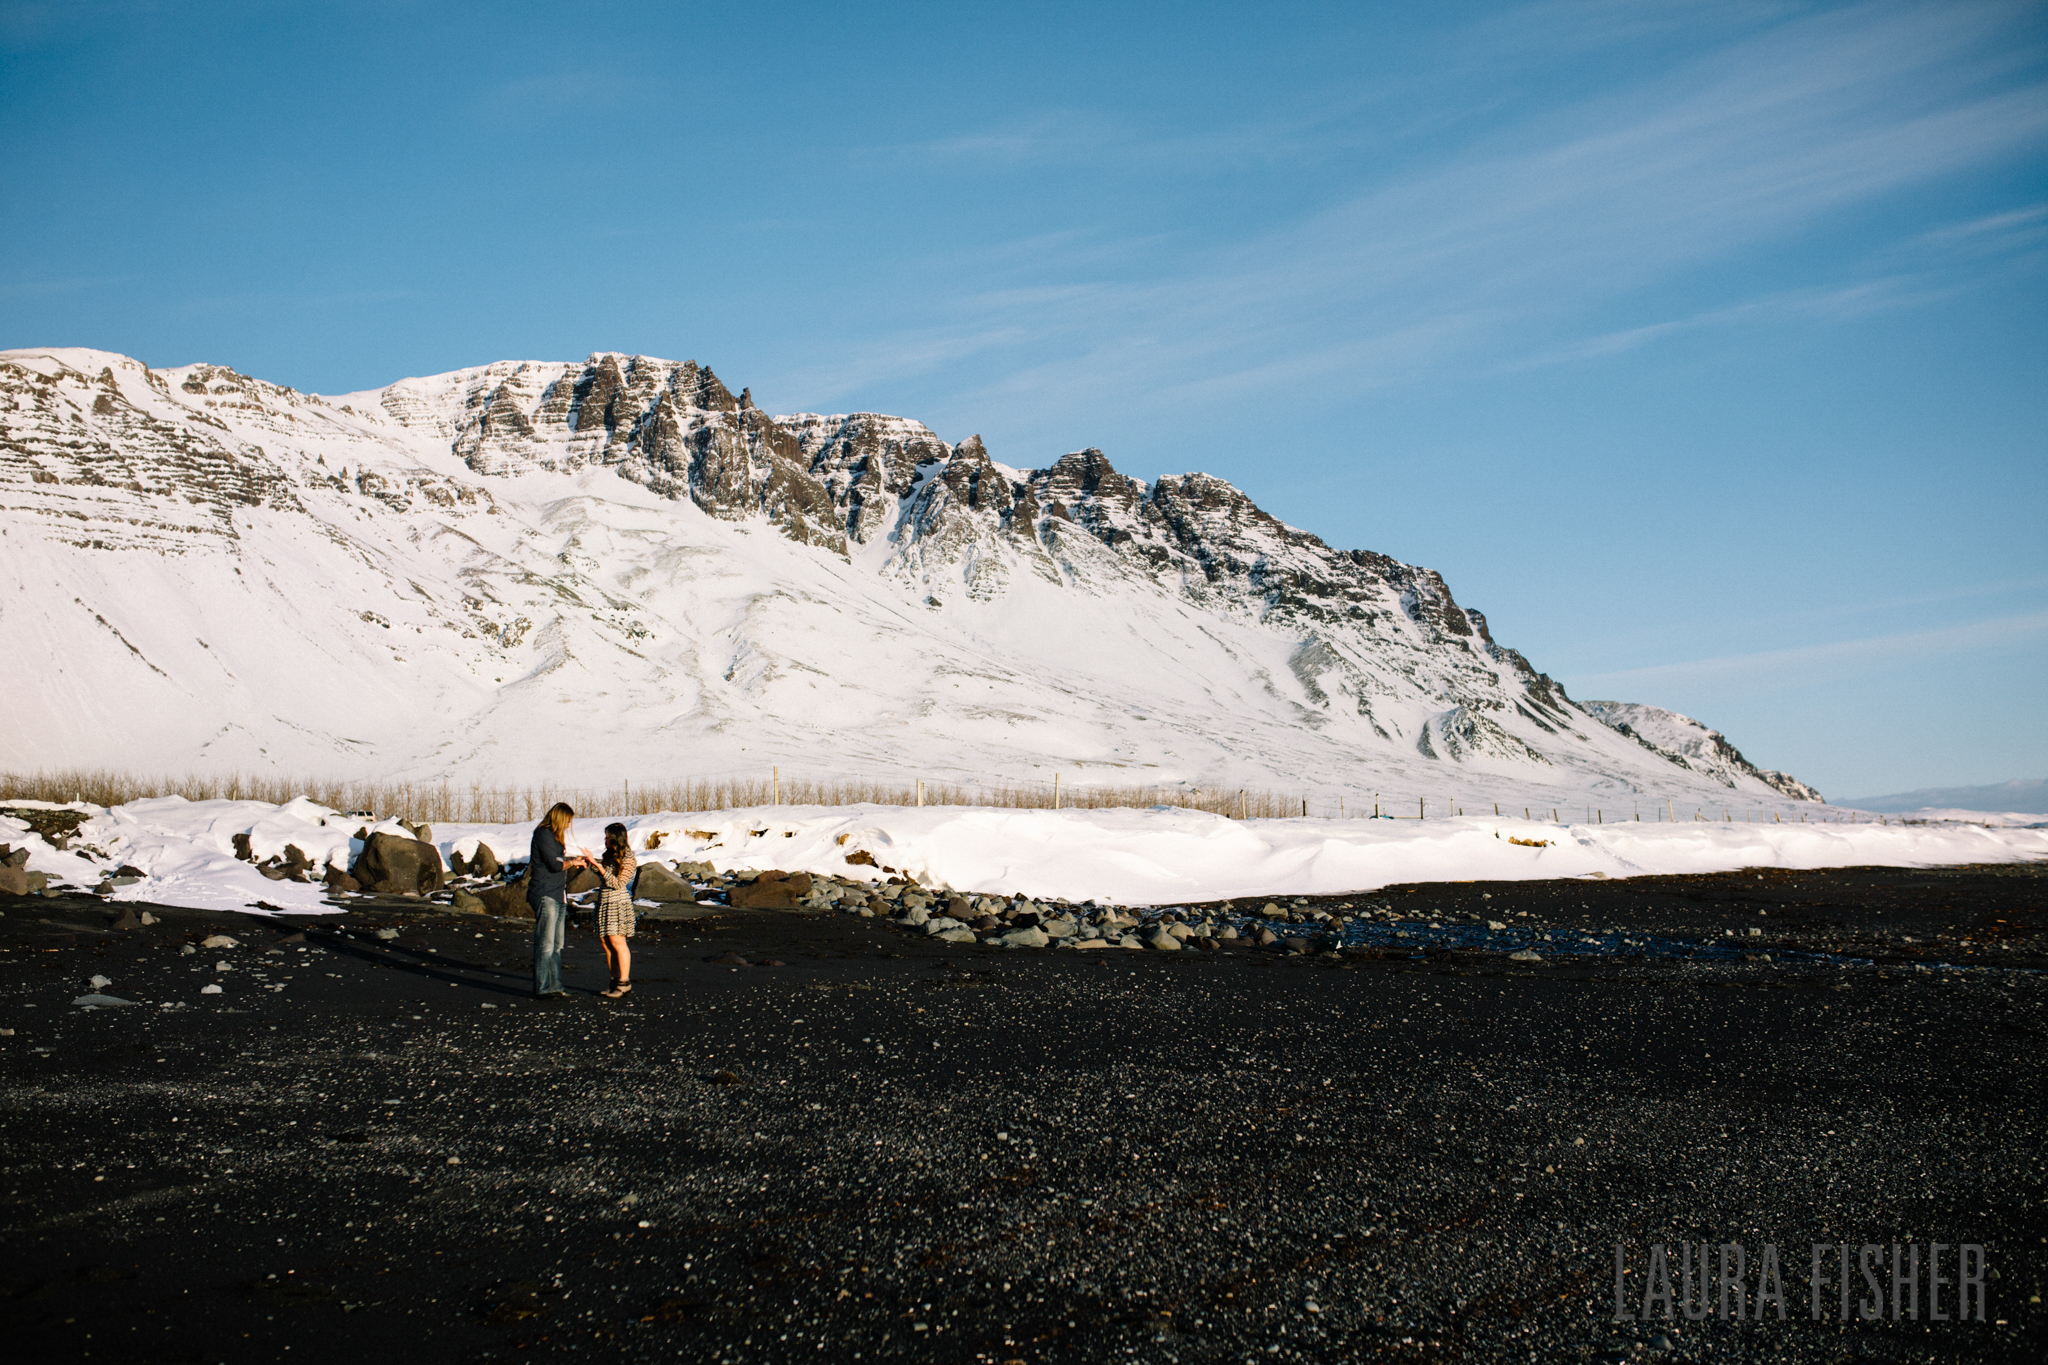 iceland-black-sand-beach-engagement-laura-fisher-photography-0010-2.jpg